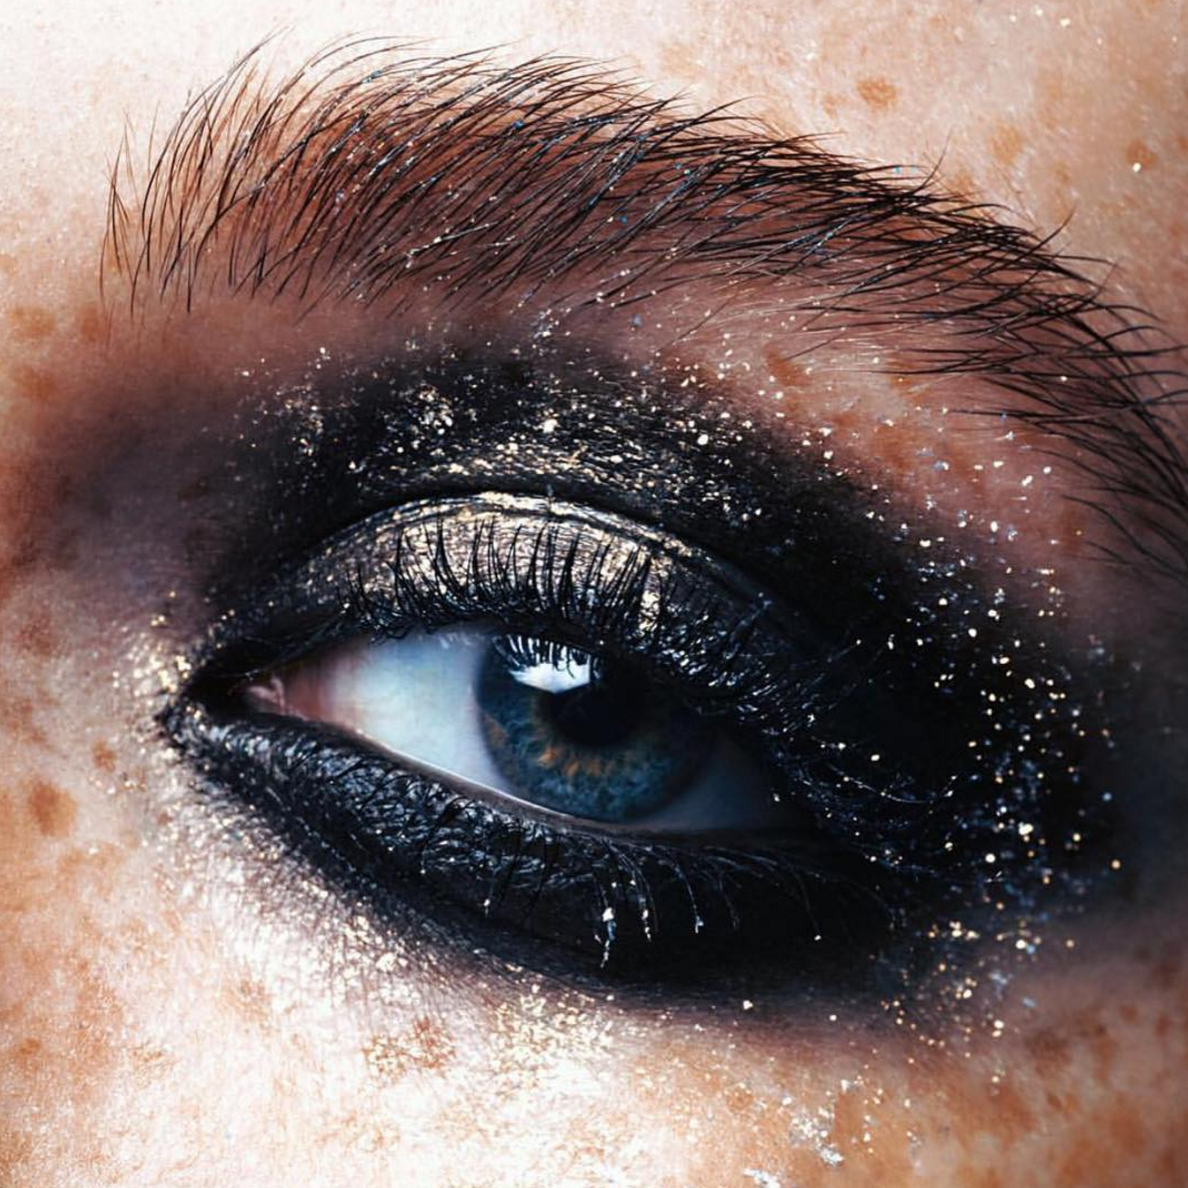 She's known for her rich technique, distinctive in its fluid and sensual application of makeup, a key reason why magazine editors and photographers love to work with her. More: http://blog.furlesscosmetics.com/caroline-torbahn/